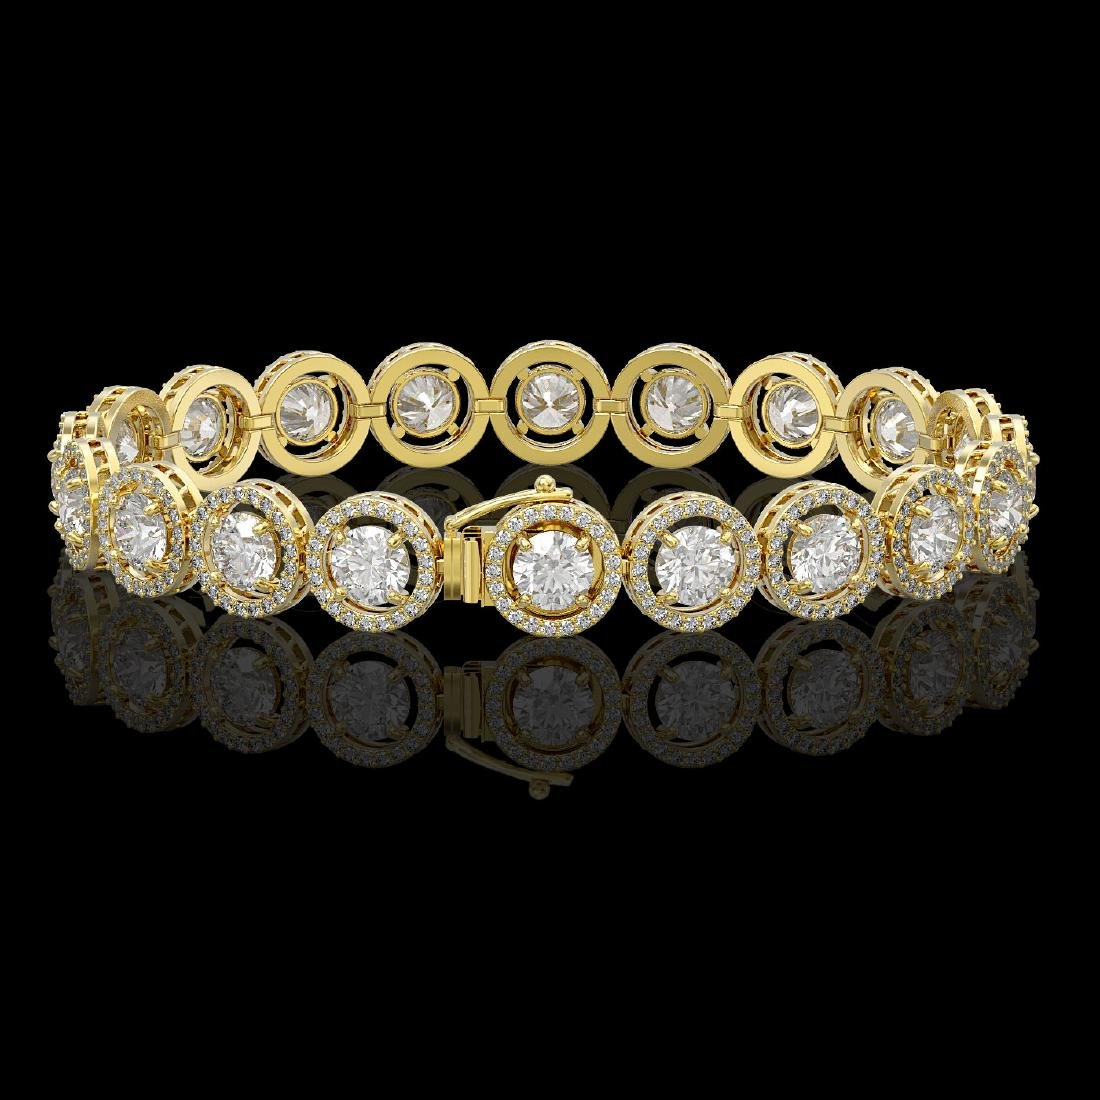 13.42 CTW Diamond Designer Bracelet 18K Yellow Gold - 2